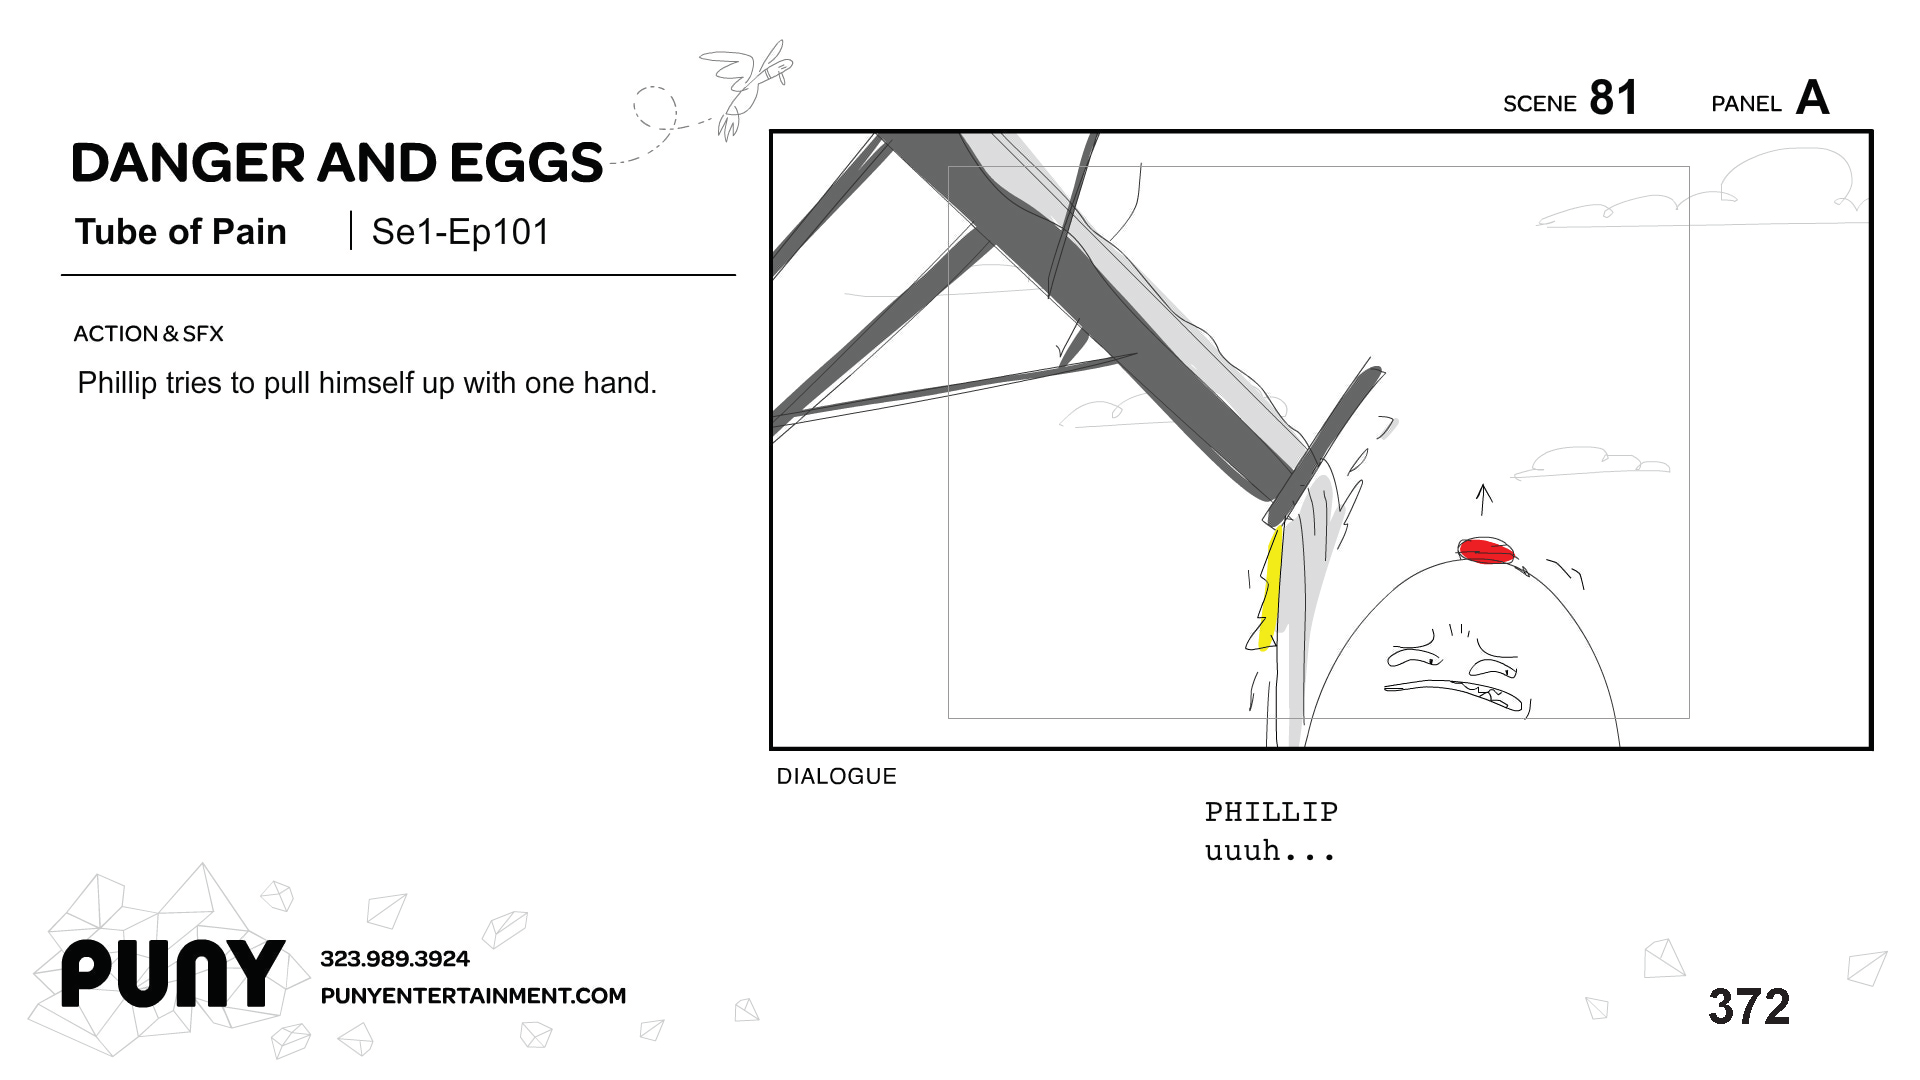 MikeOwens_STORYBOARDS_DangerAndEggs_Page_267.png